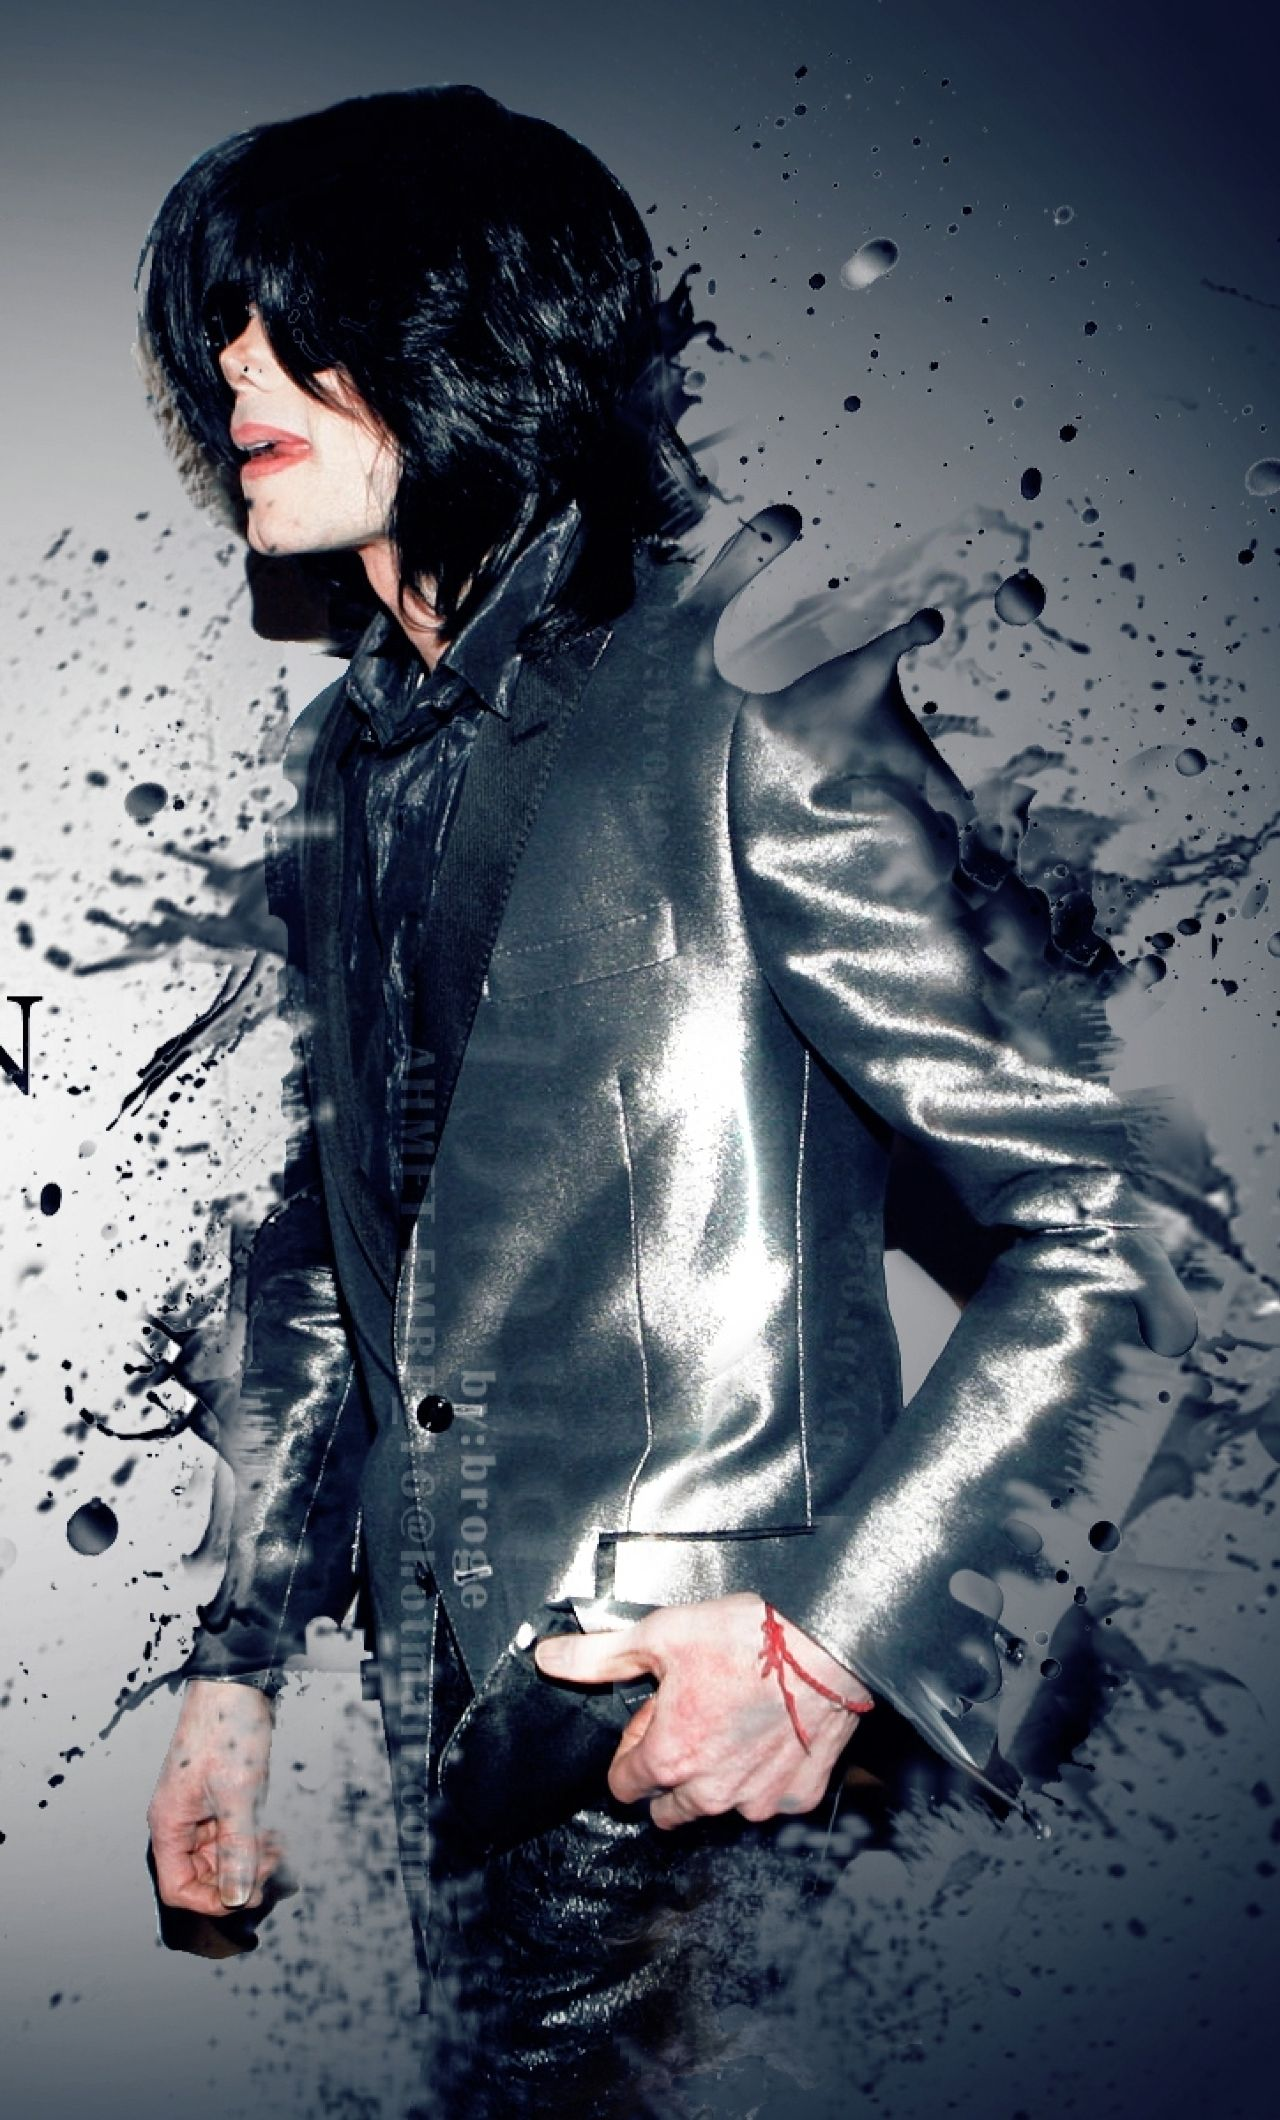 michael jackson glamorous photoshoot hd wallpaper (With